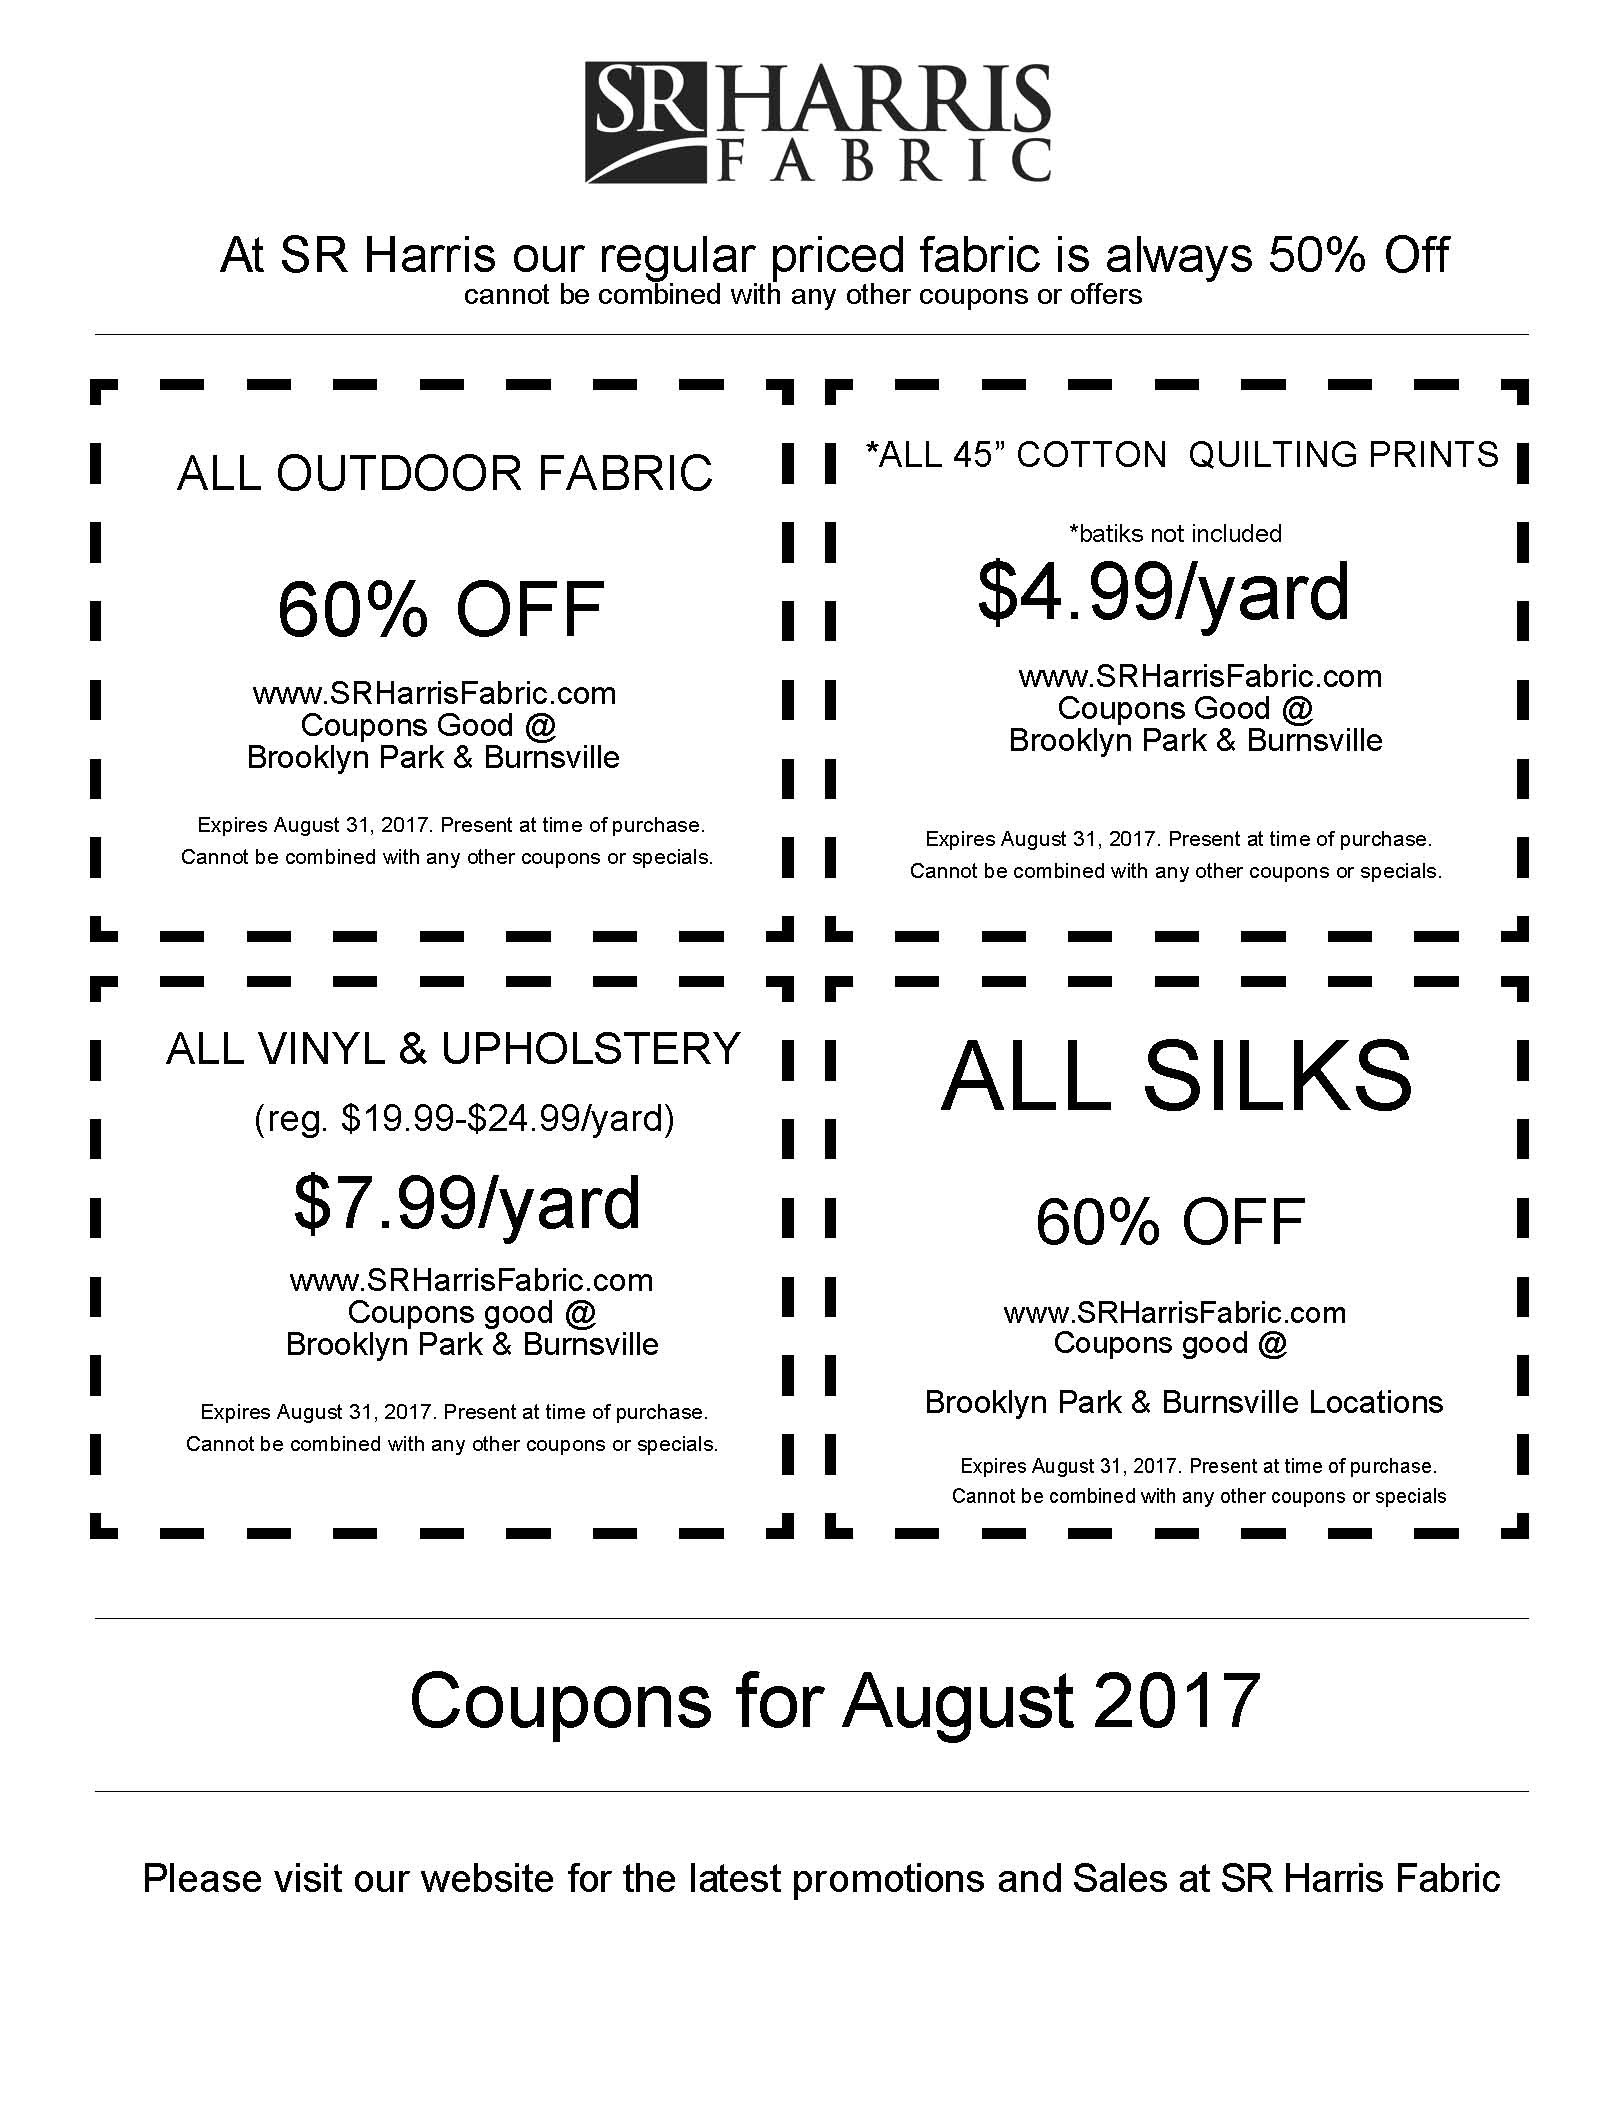 SR HARRIS August 2017 COUPONS